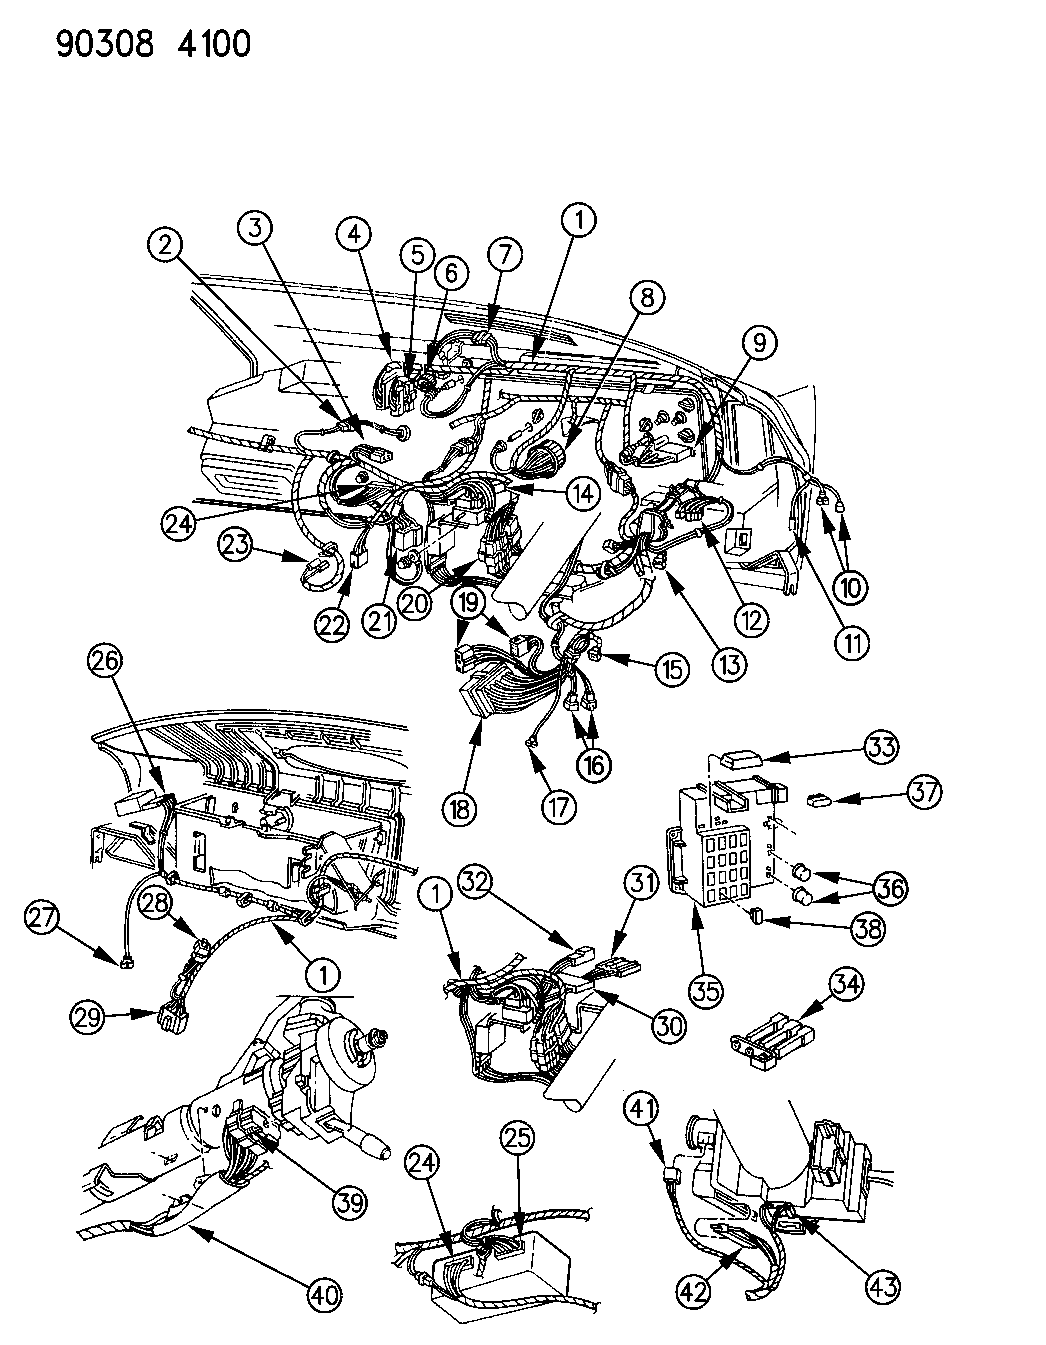 1993 Dodge Ramcharger Wiring